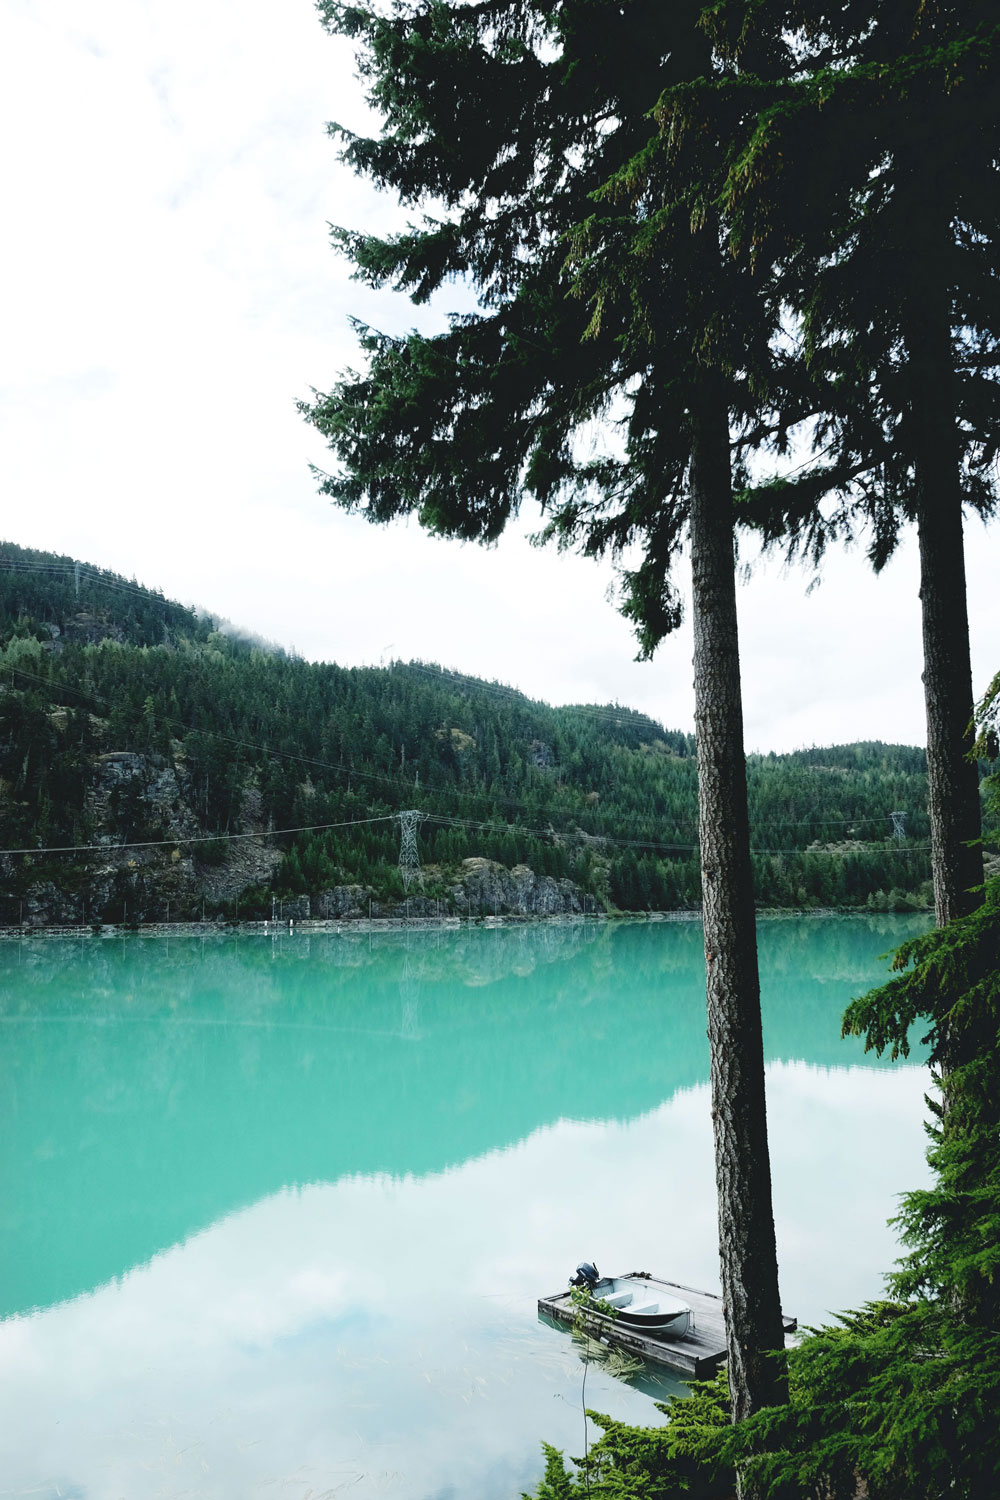 Most beautiful lakes in BC: Green Lake in Whistler, Canada